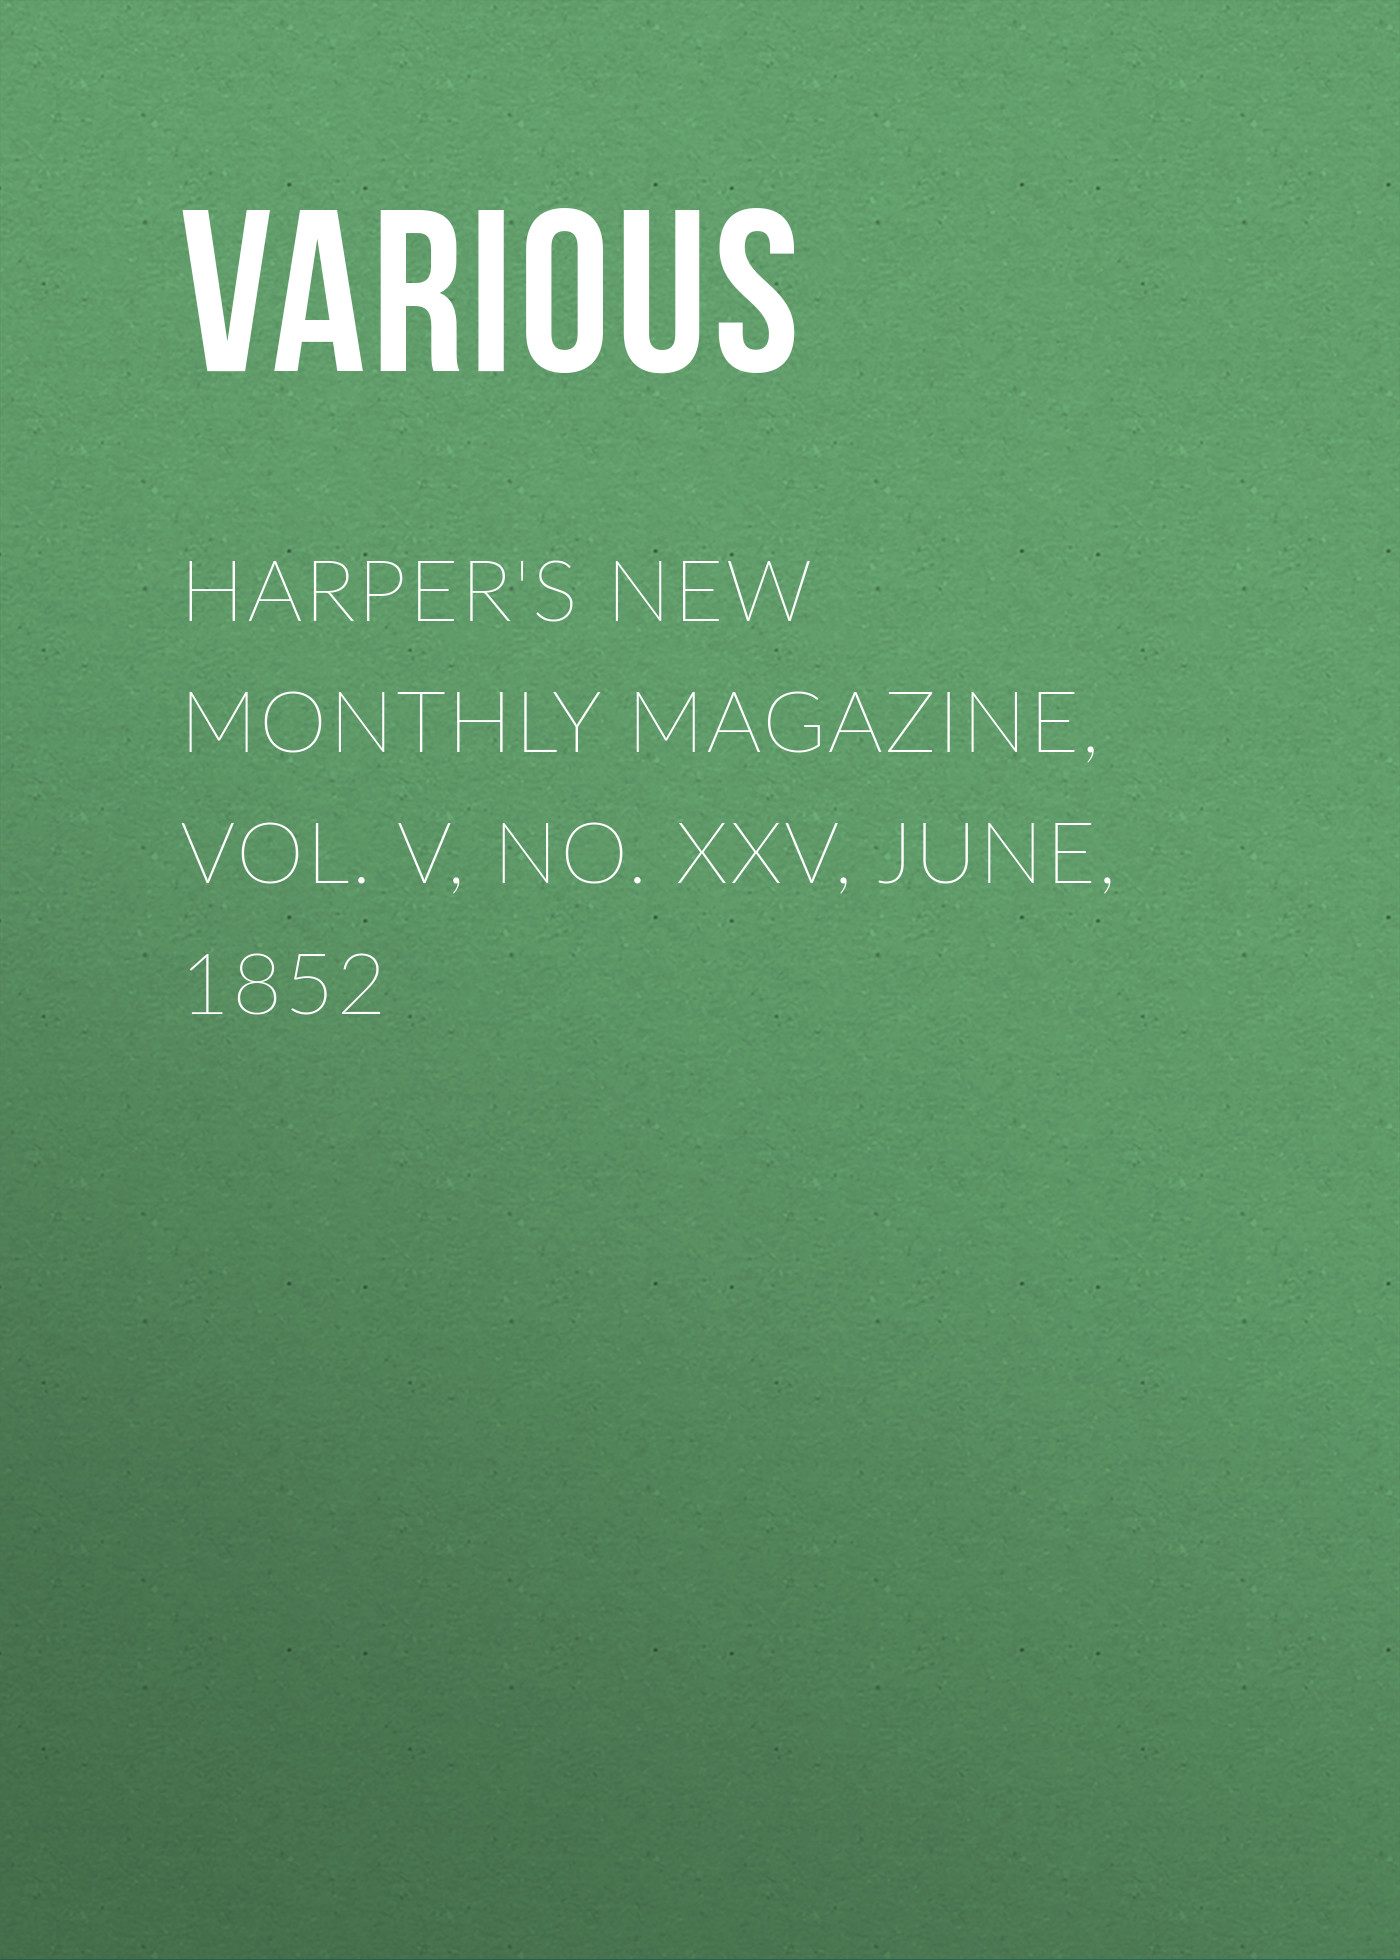 Various Harper's New Monthly Magazine, Vol. V, No. XXV, June, 1852 various harper s new monthly magazine vol iv no xx january 1852